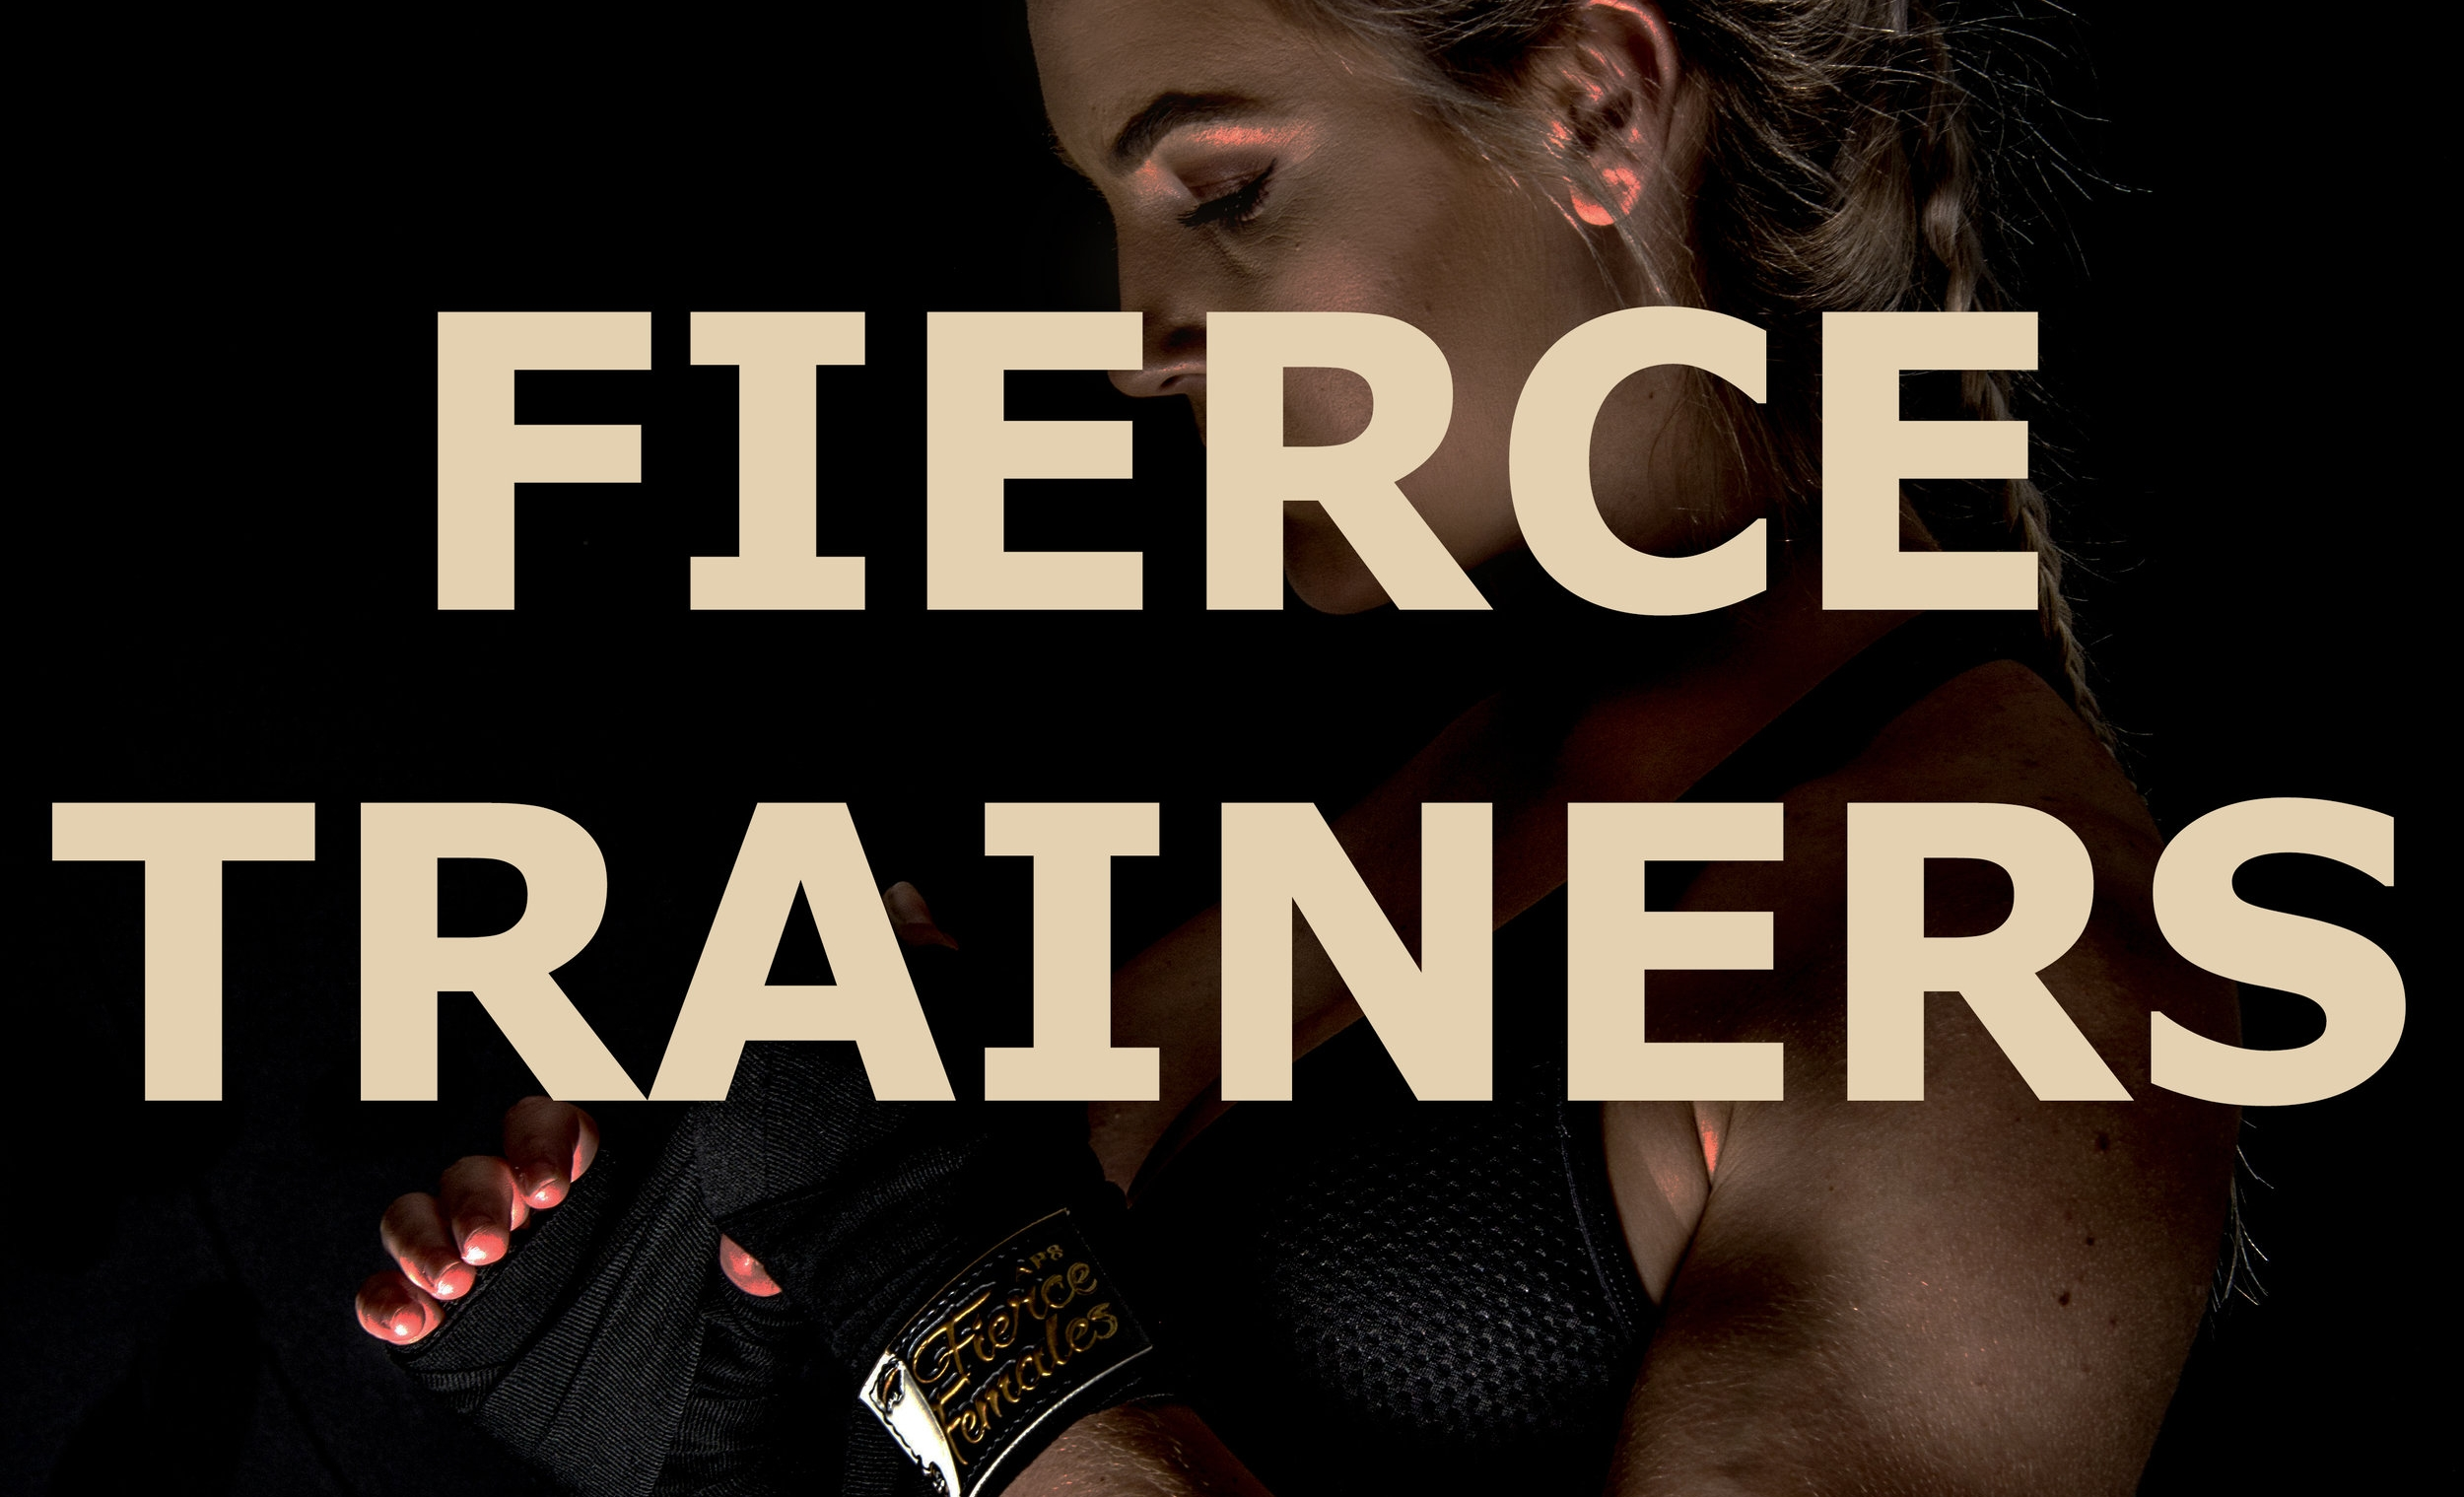 AP8 Fierce Females is seeking a inspirational, enthusiastic and passionate female to join our team of empowered woman.  Team Fierce is seeking a experienced Women's Self Defence Instructor to fill the role of FIERCE TRAINER.. is that you?  Our FIERCE TRAINERS are exactly that.. FIERCE (Fearless, Independent, Educated, Responsible, Courageous, and Empowered).  If successful; you will be leading females of all ages along a journey of self discovery.. Instructing each and every student how to safely become their very own version of a empowered woman. You will be a shoulder to cry on, a friend to laugh with, and a leader to challenge and inspire..  The successful applicant will be facilitating classes, seminars, courses, private tutorials and presentations all over south-east Queensland in community centres, private businesses, schools, and universities.  You must be available to travel when required. Our students are between the ages of 5 -100, so you must be comfortable teaching children as well as adults.  You will be required to deliver a high standard of customer service whilst you coach and train our students. Quality and safety standards must be upheld at all times.  Must haves..    - Extensive martial arts experience  - Current blue card  - Be physically fit  - Experience in both adult and child teaching/training  - Basic computer skills  - Exceptional presentation, interpersonal, and communication skills both written and verbal.  - Strong organisational & time management skills and attention to detail  - Drivers licence essential  - Be available to work varied shifts, including early mornings, evenings, weekends and public holidays